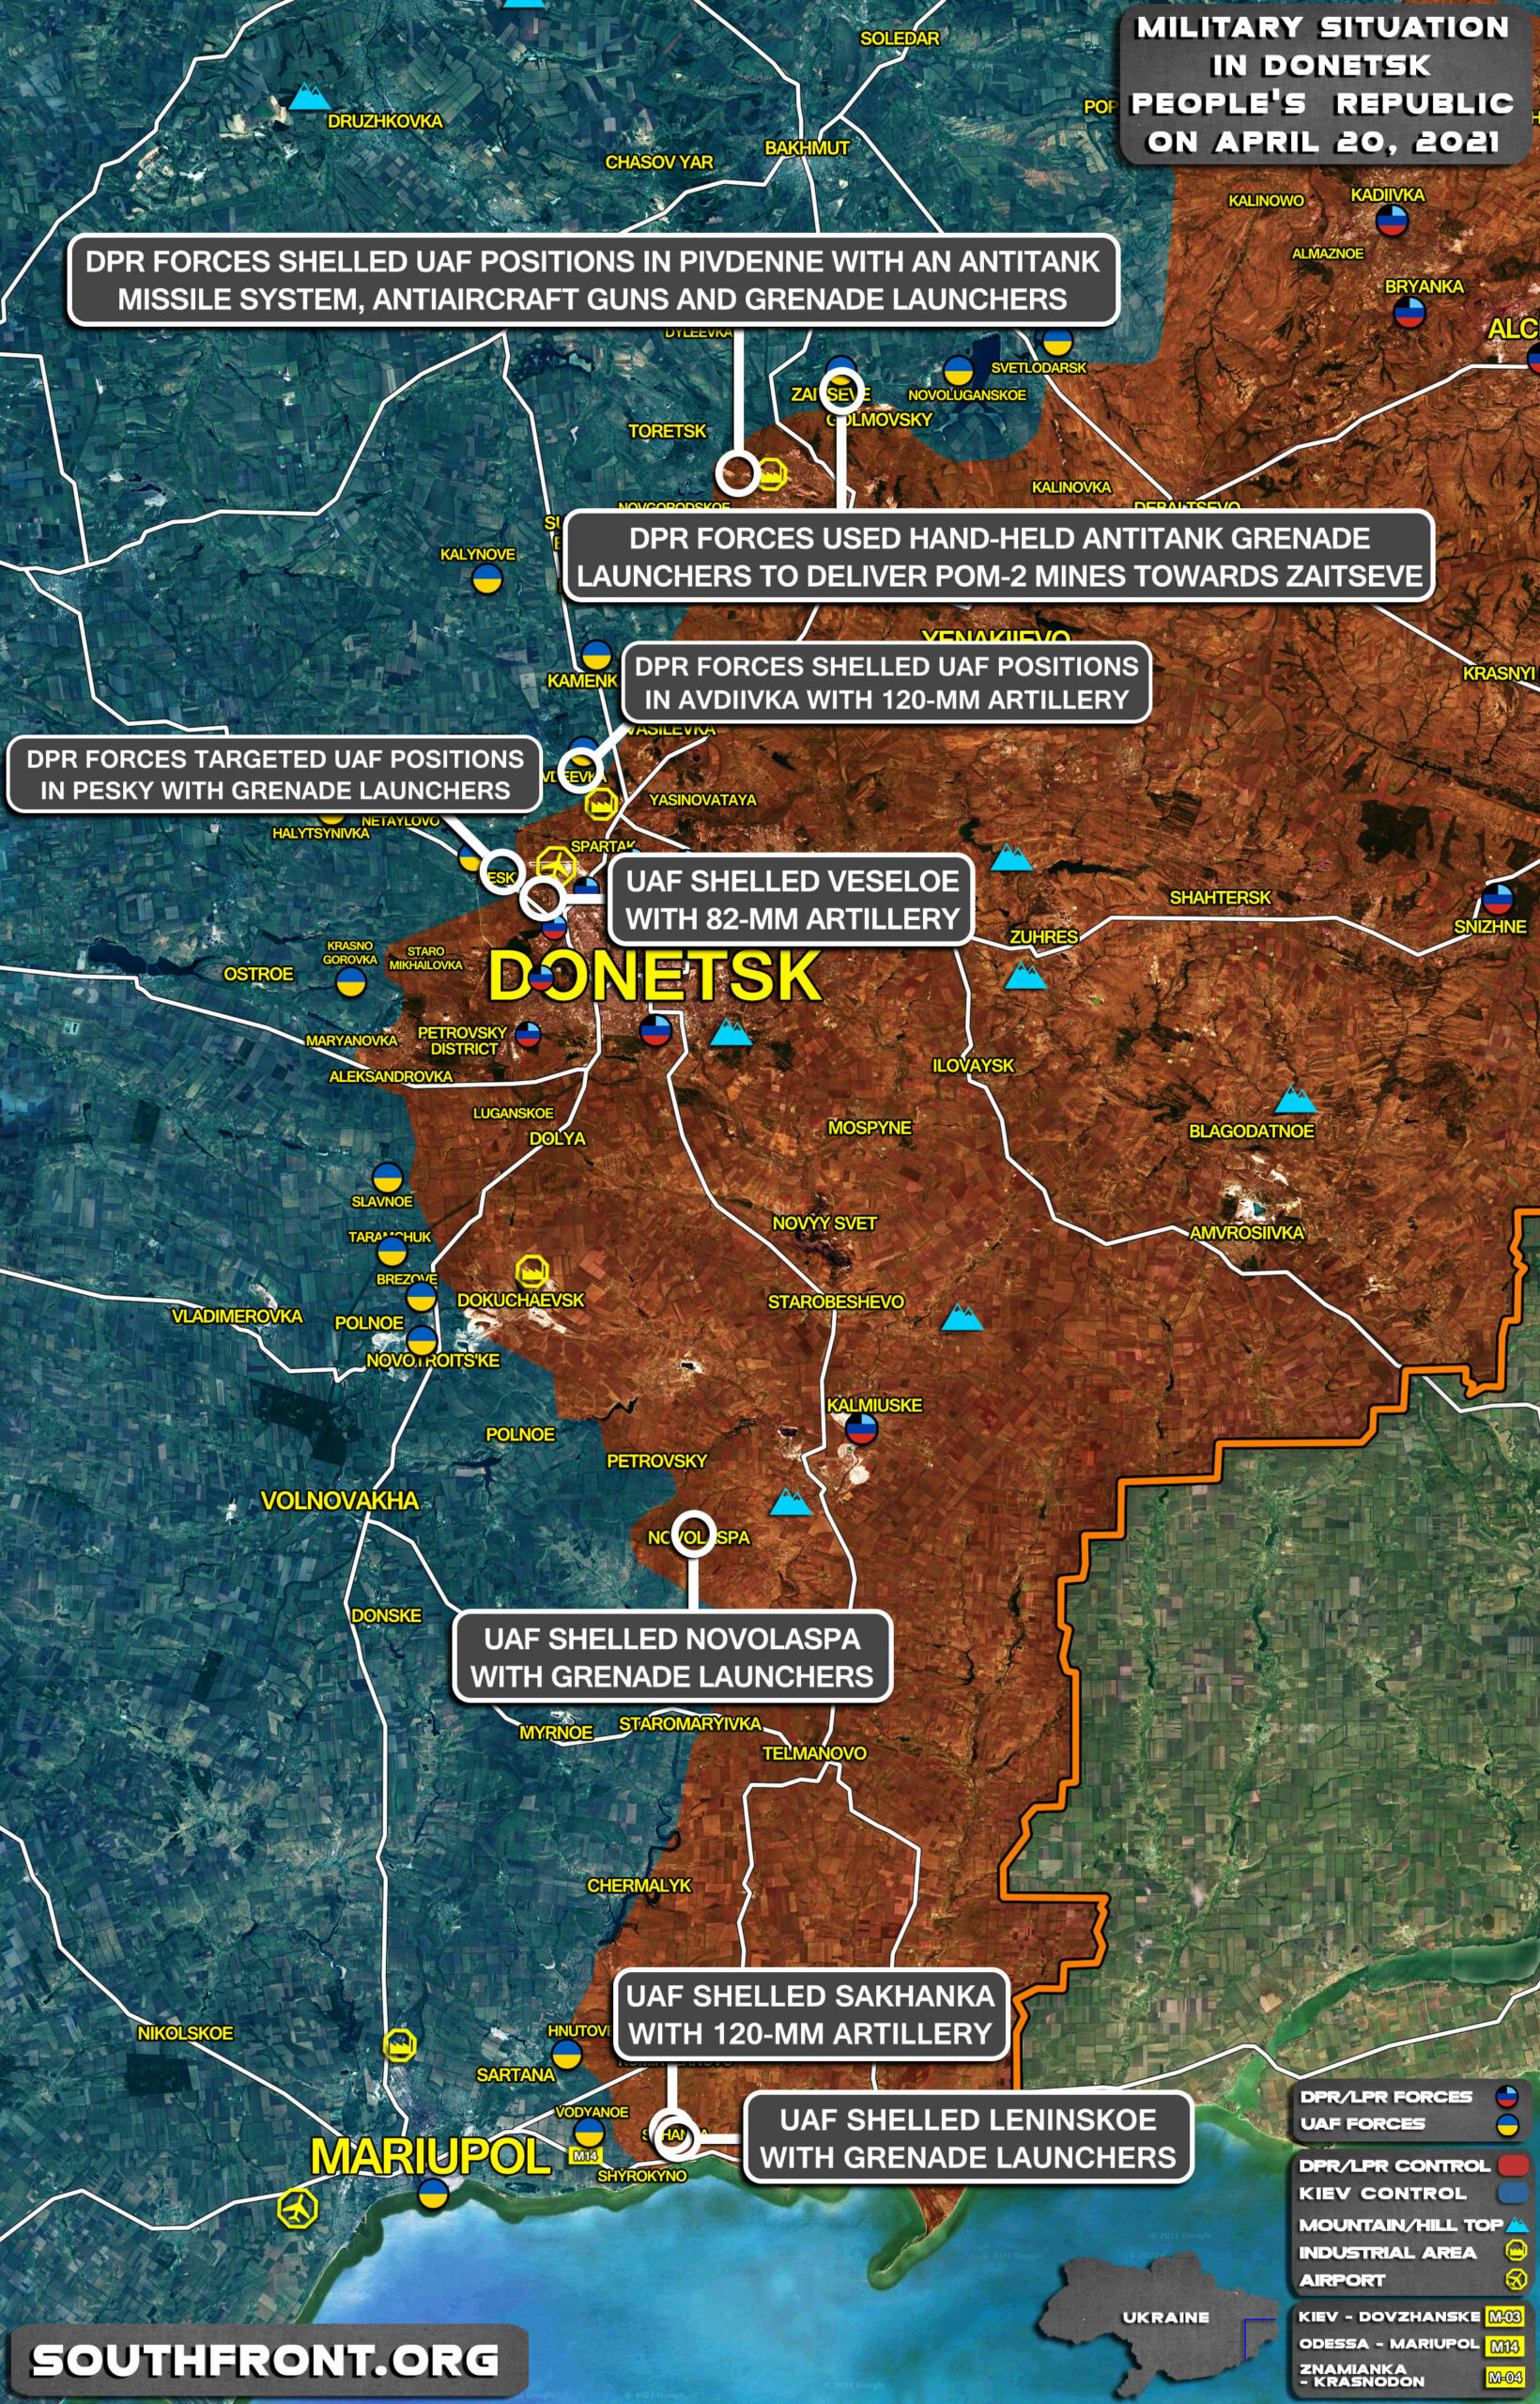 Military Situation In Donetsk People's Republic On April 20, 2021 (Map Update)